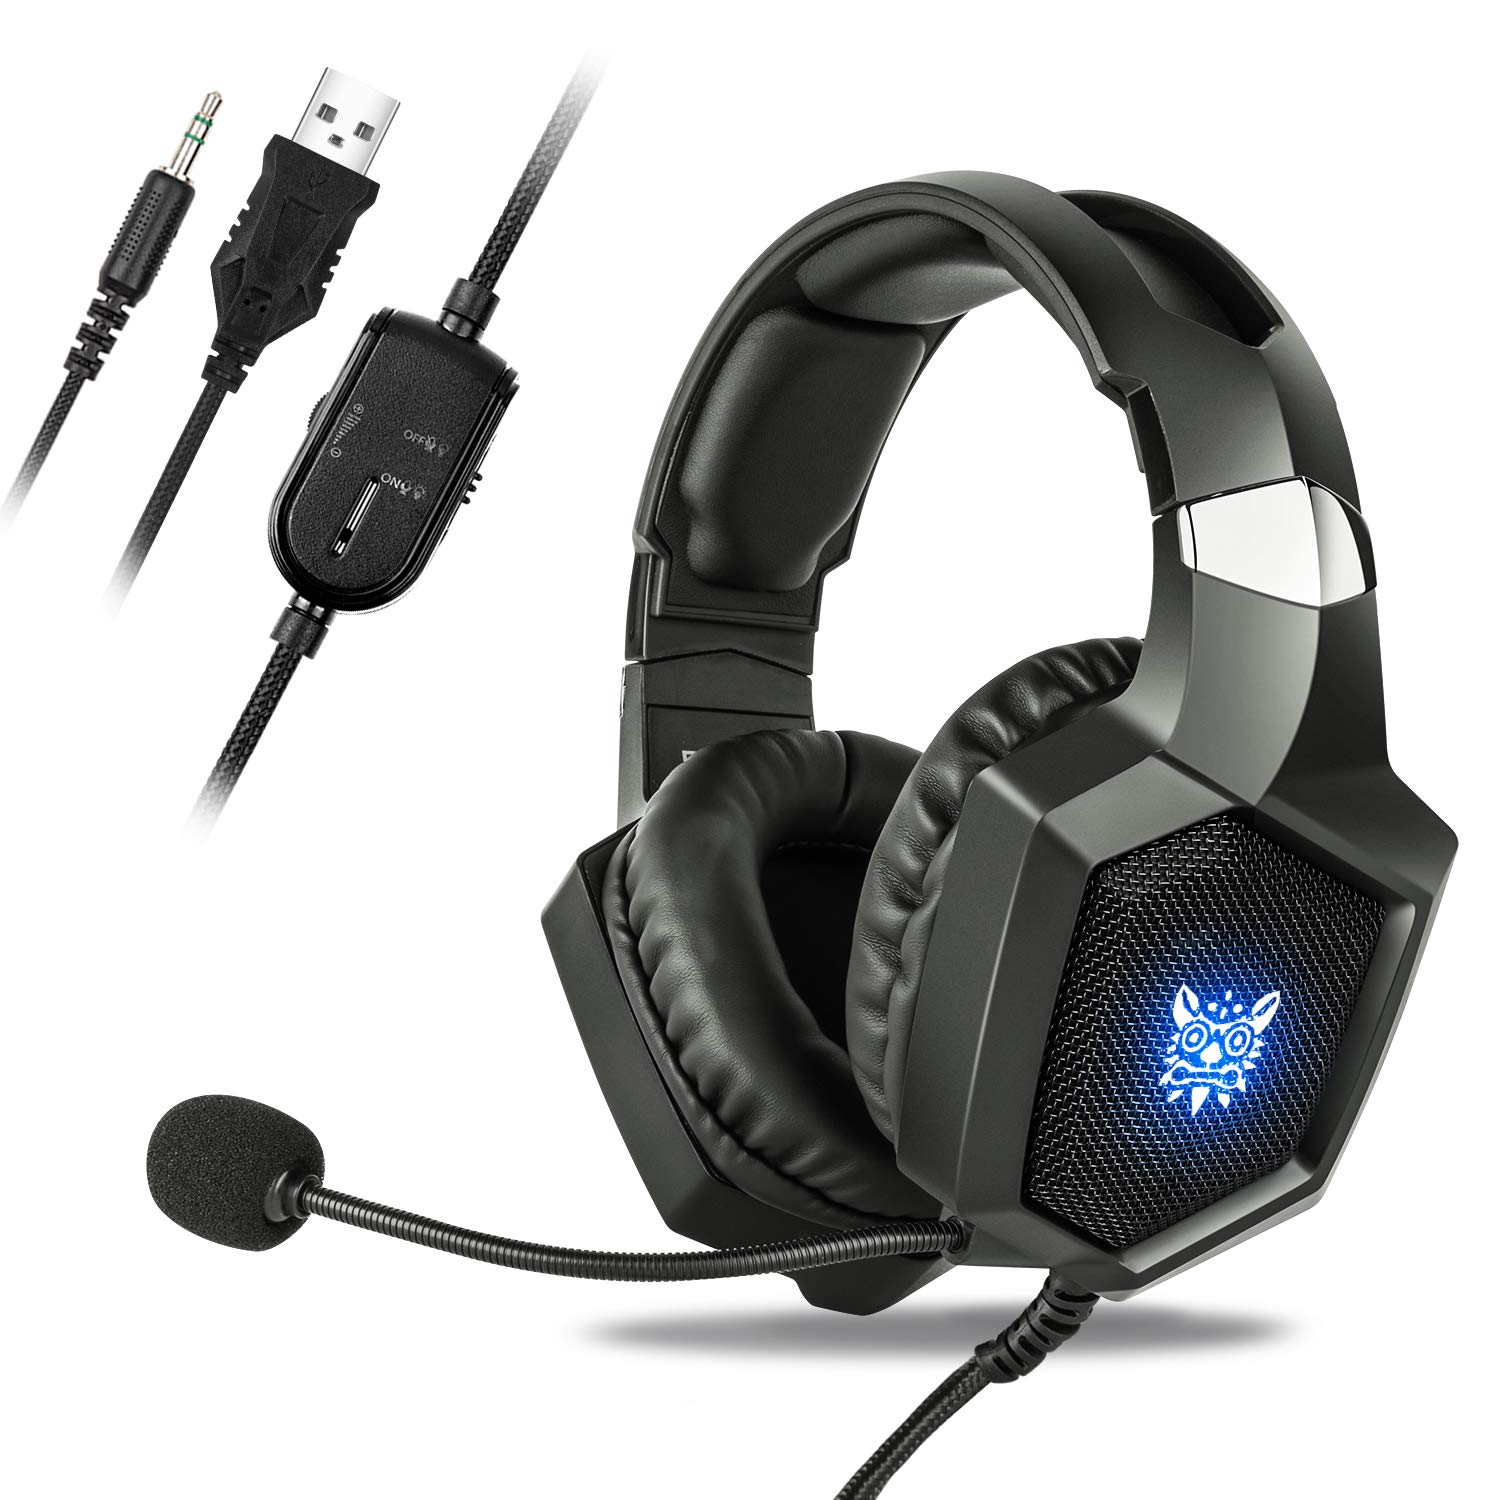 Gaming Headset Compatible Xbox One, Fuleadture Headset PS4 with Mic, PC,Noise Cancelling Over Ear Headphones with LED Light Bass Surround Soft Memory Earmuffs by Choyur